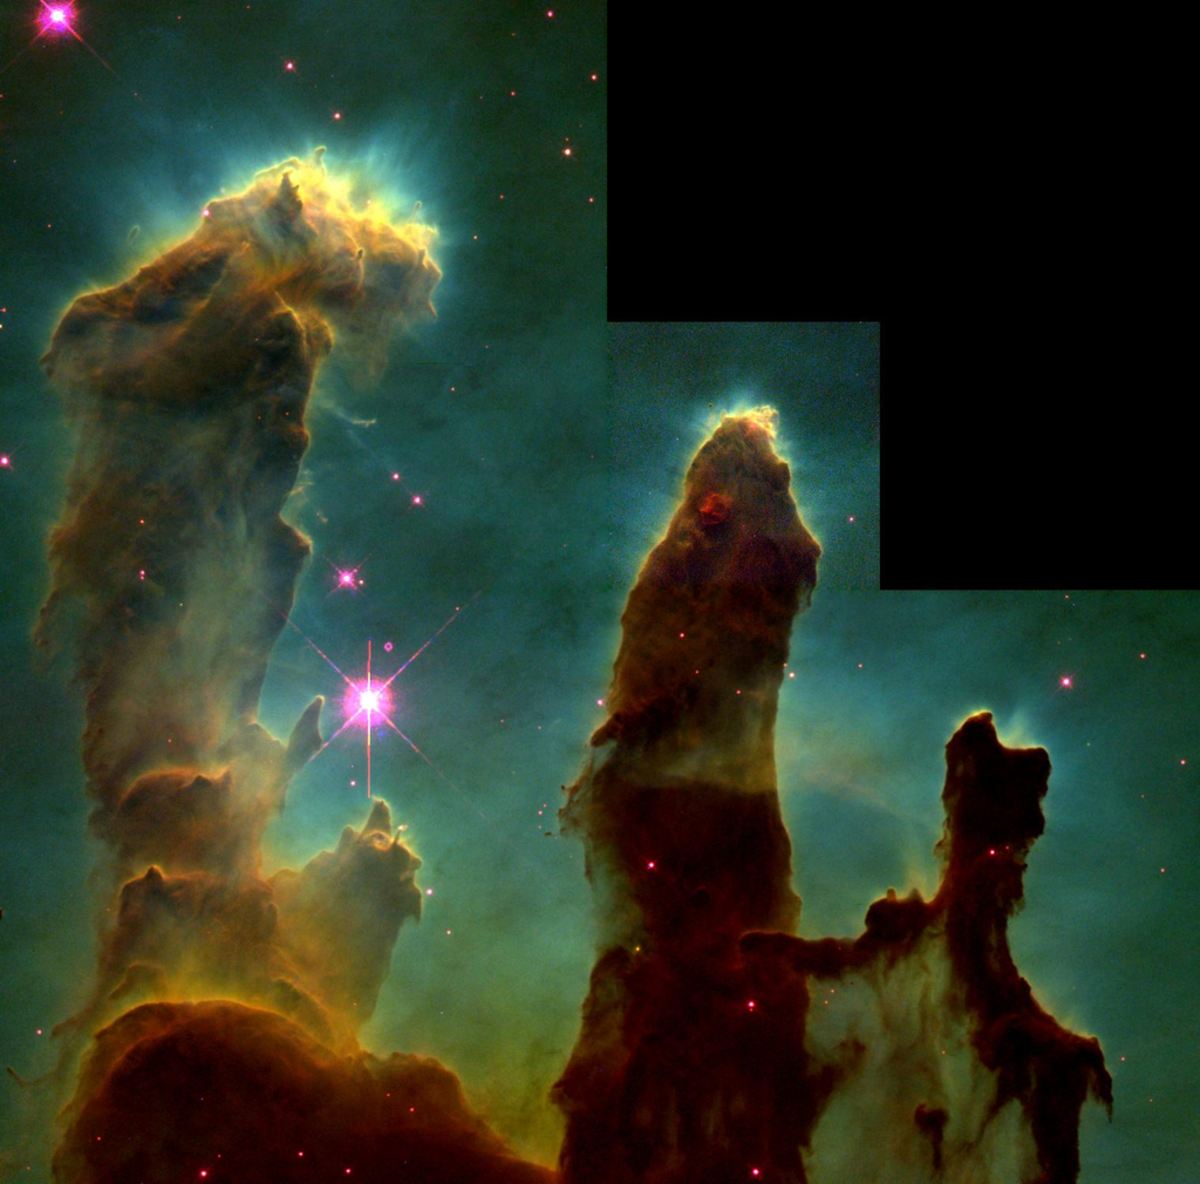 (Photo: NASA/ESA/STScI/J. Hester, P. Scowen)